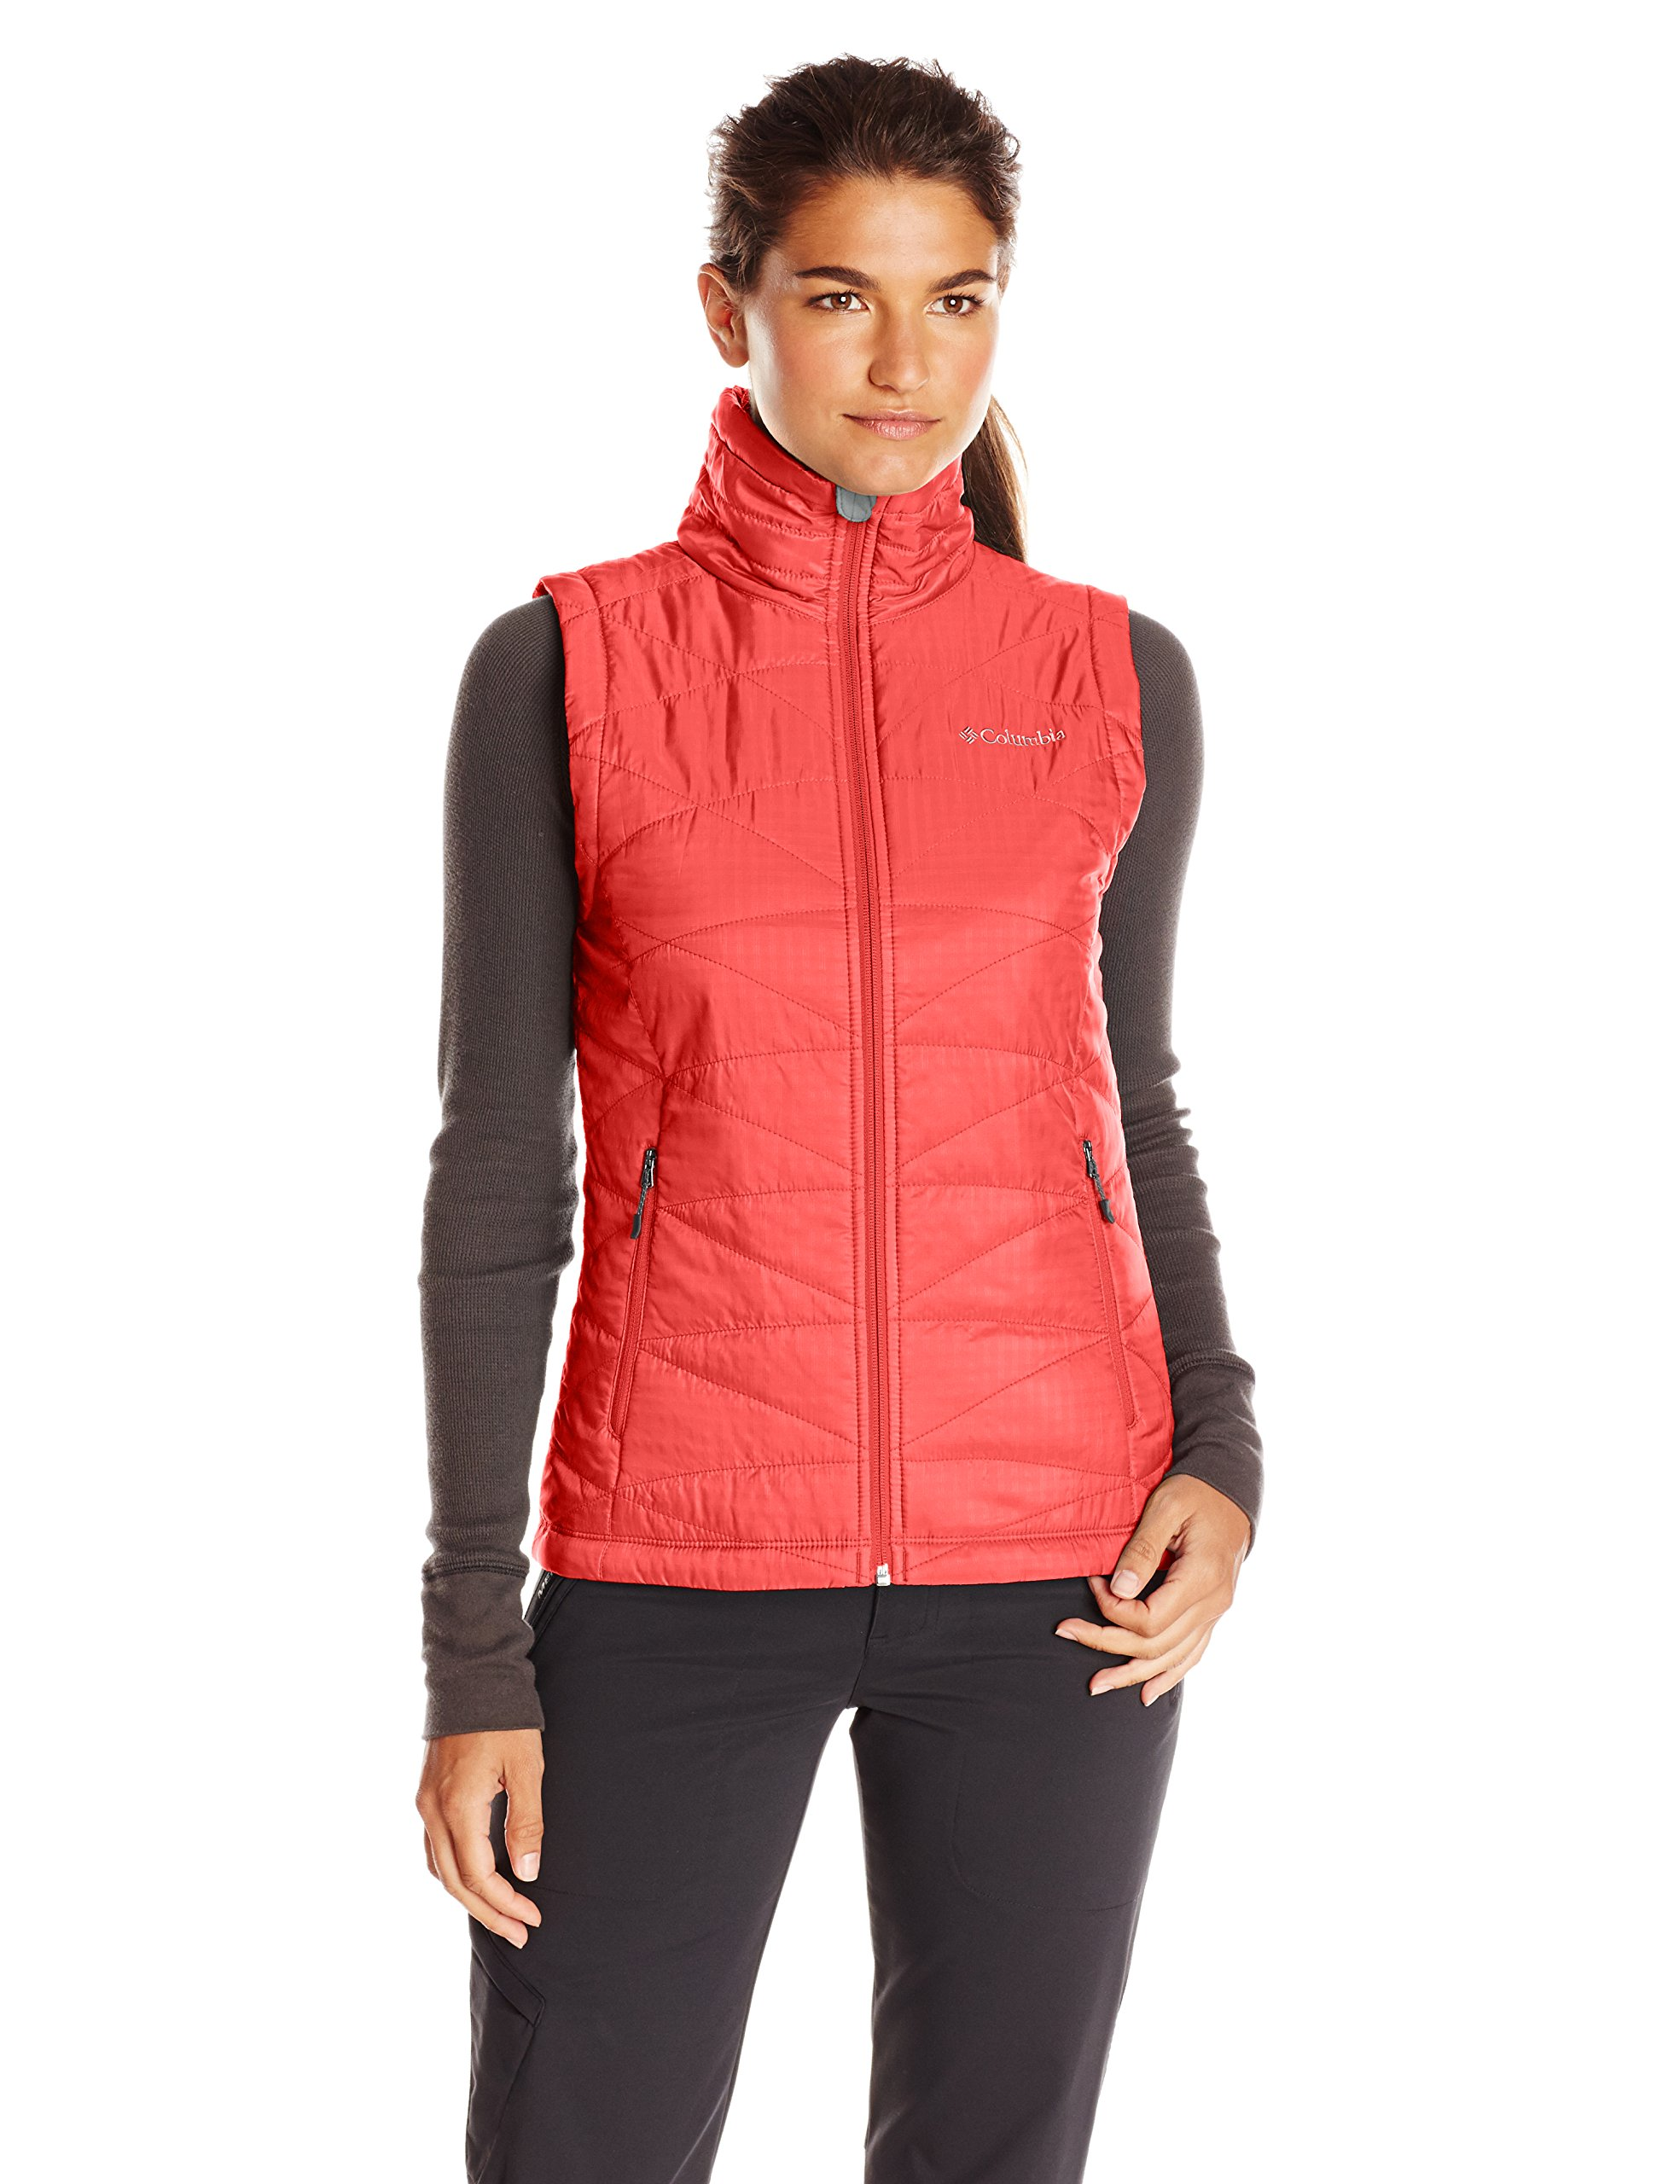 Columbia Women's Mighty Lite III Vest, Red Camellia, 2X